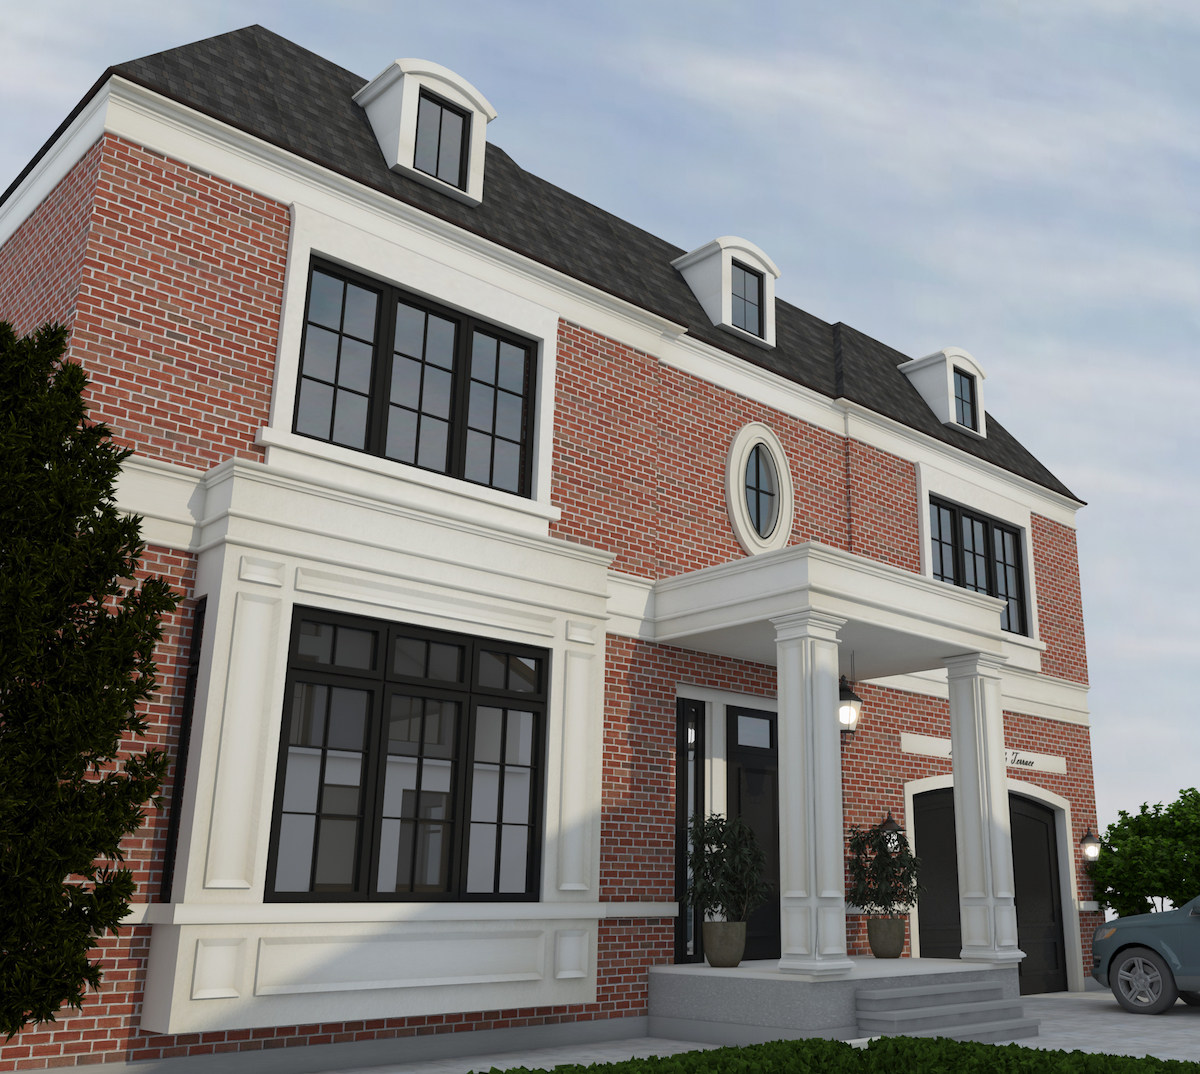 Residential exterior rendering of a house